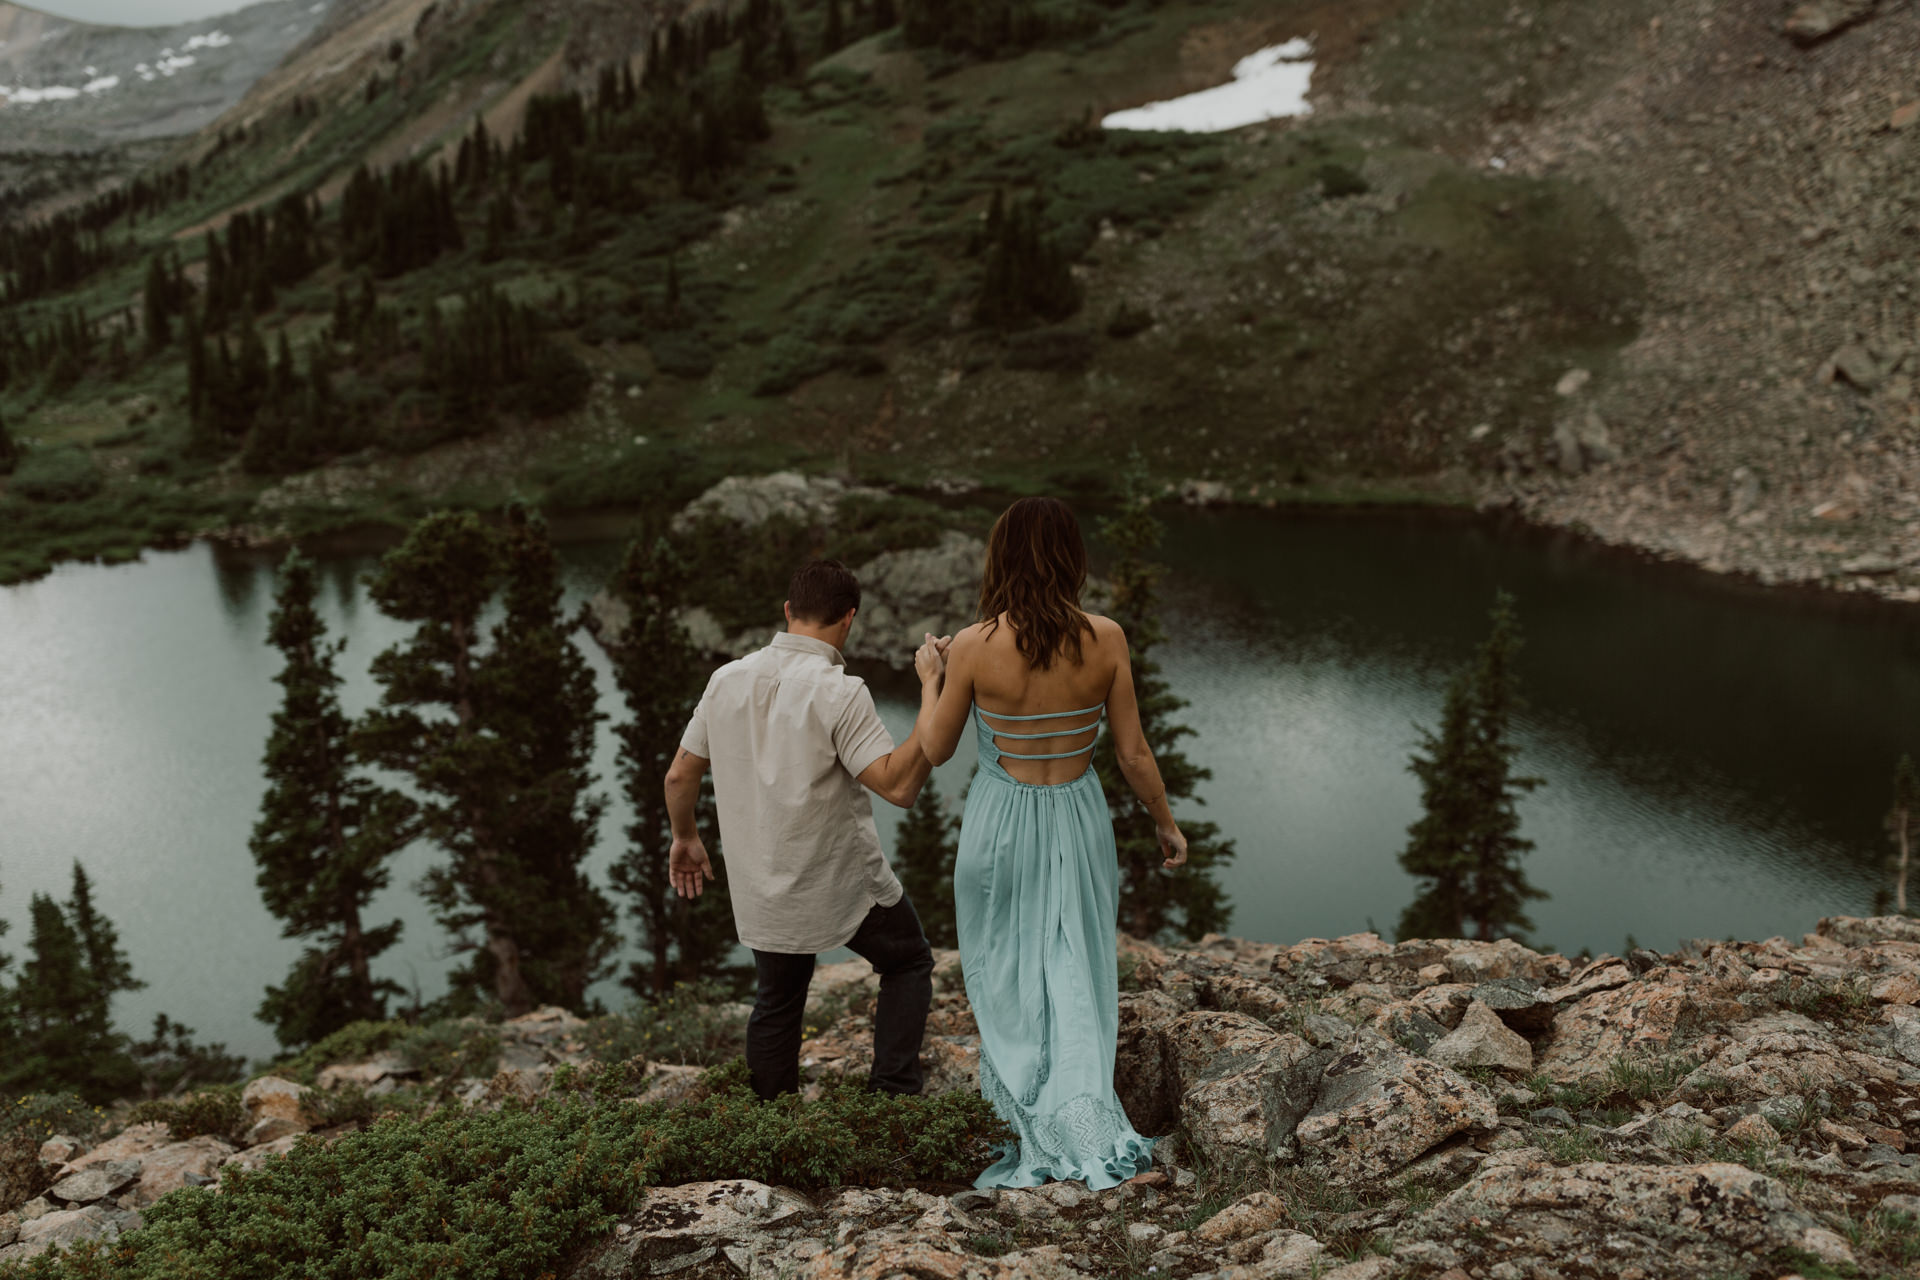 colorado-alpine-lake-adventure-engagements-19.jpg